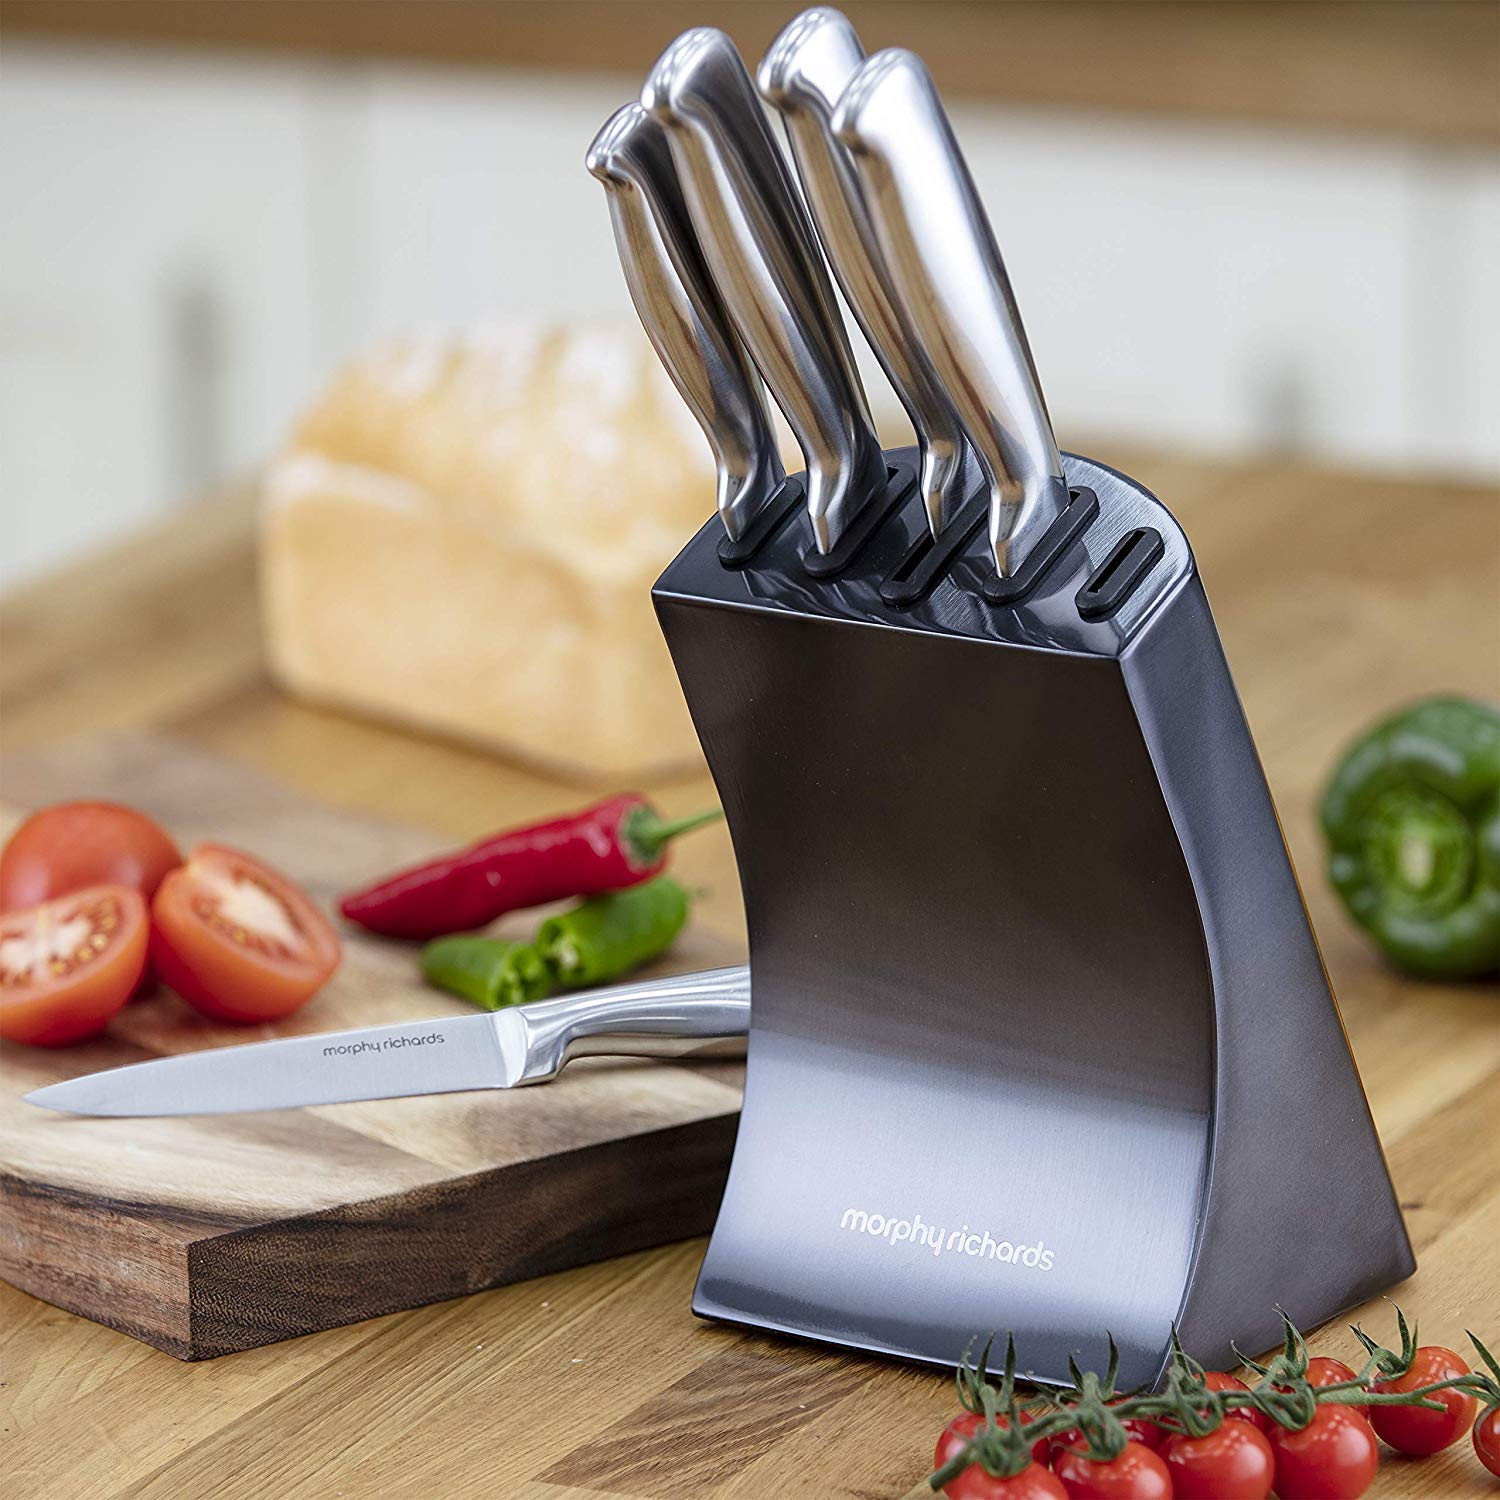 Morphy Richards Accents Knife Block, Satin, Stainless Steel Finish, 5 Piece -£39.99